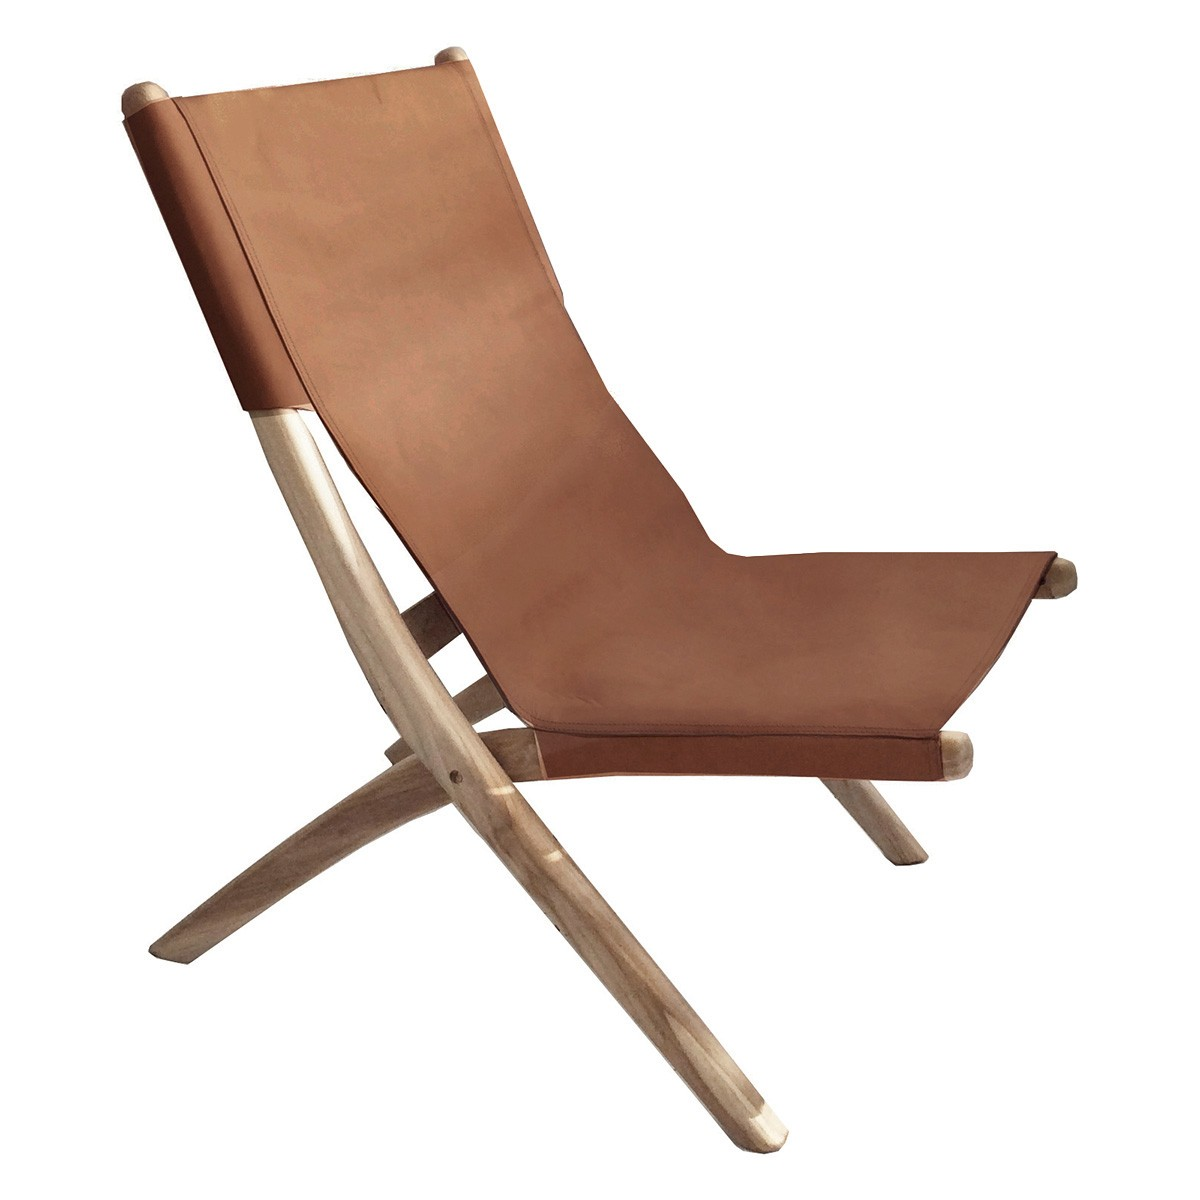 Favela Leather & Teak Folding Lounge Chair, Tan